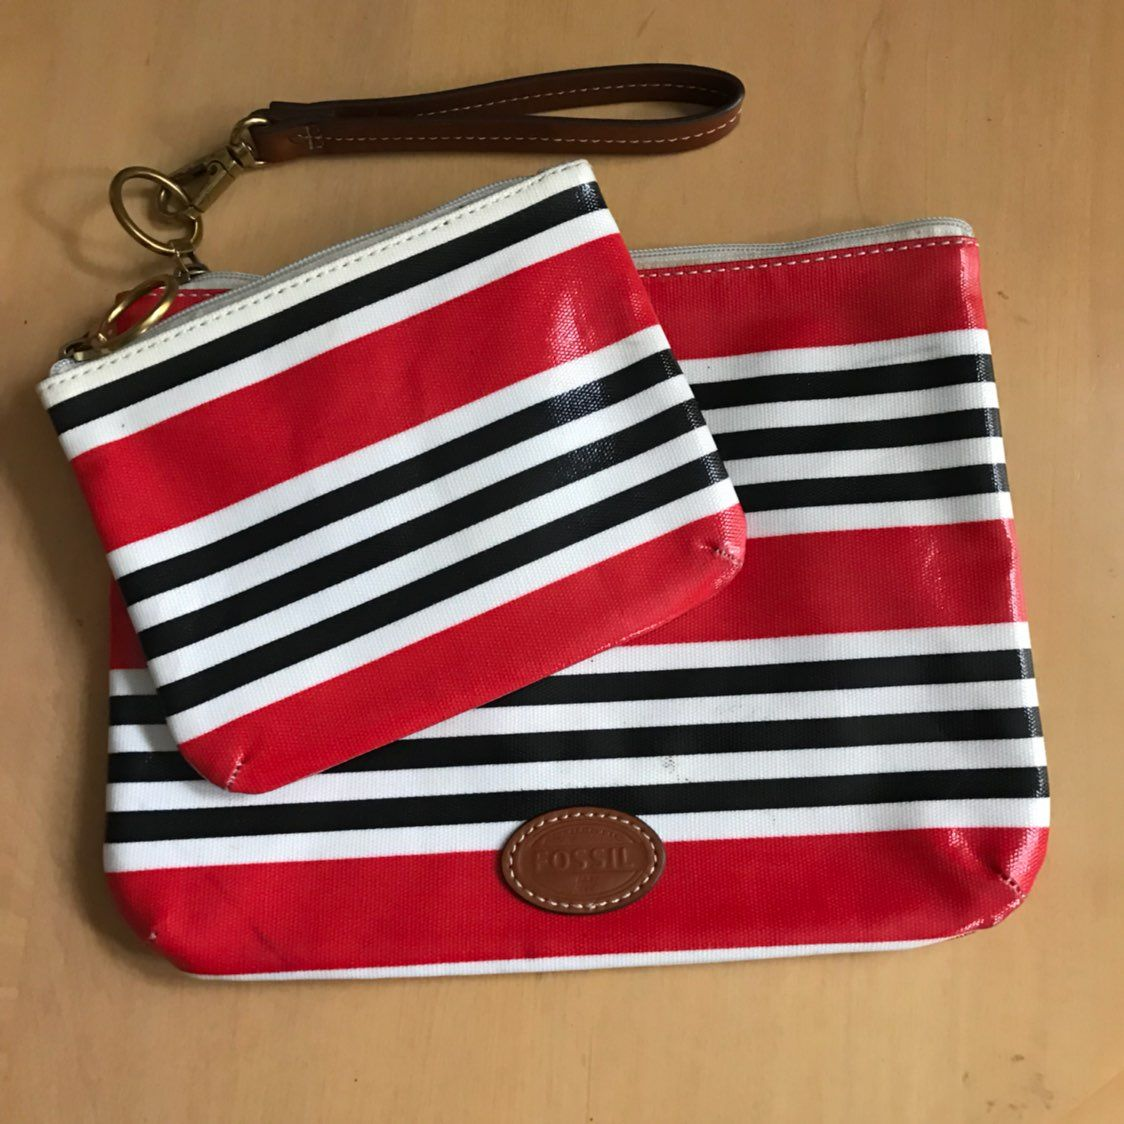 Fossil Utility Bag / Clutch Mercari The Selling App